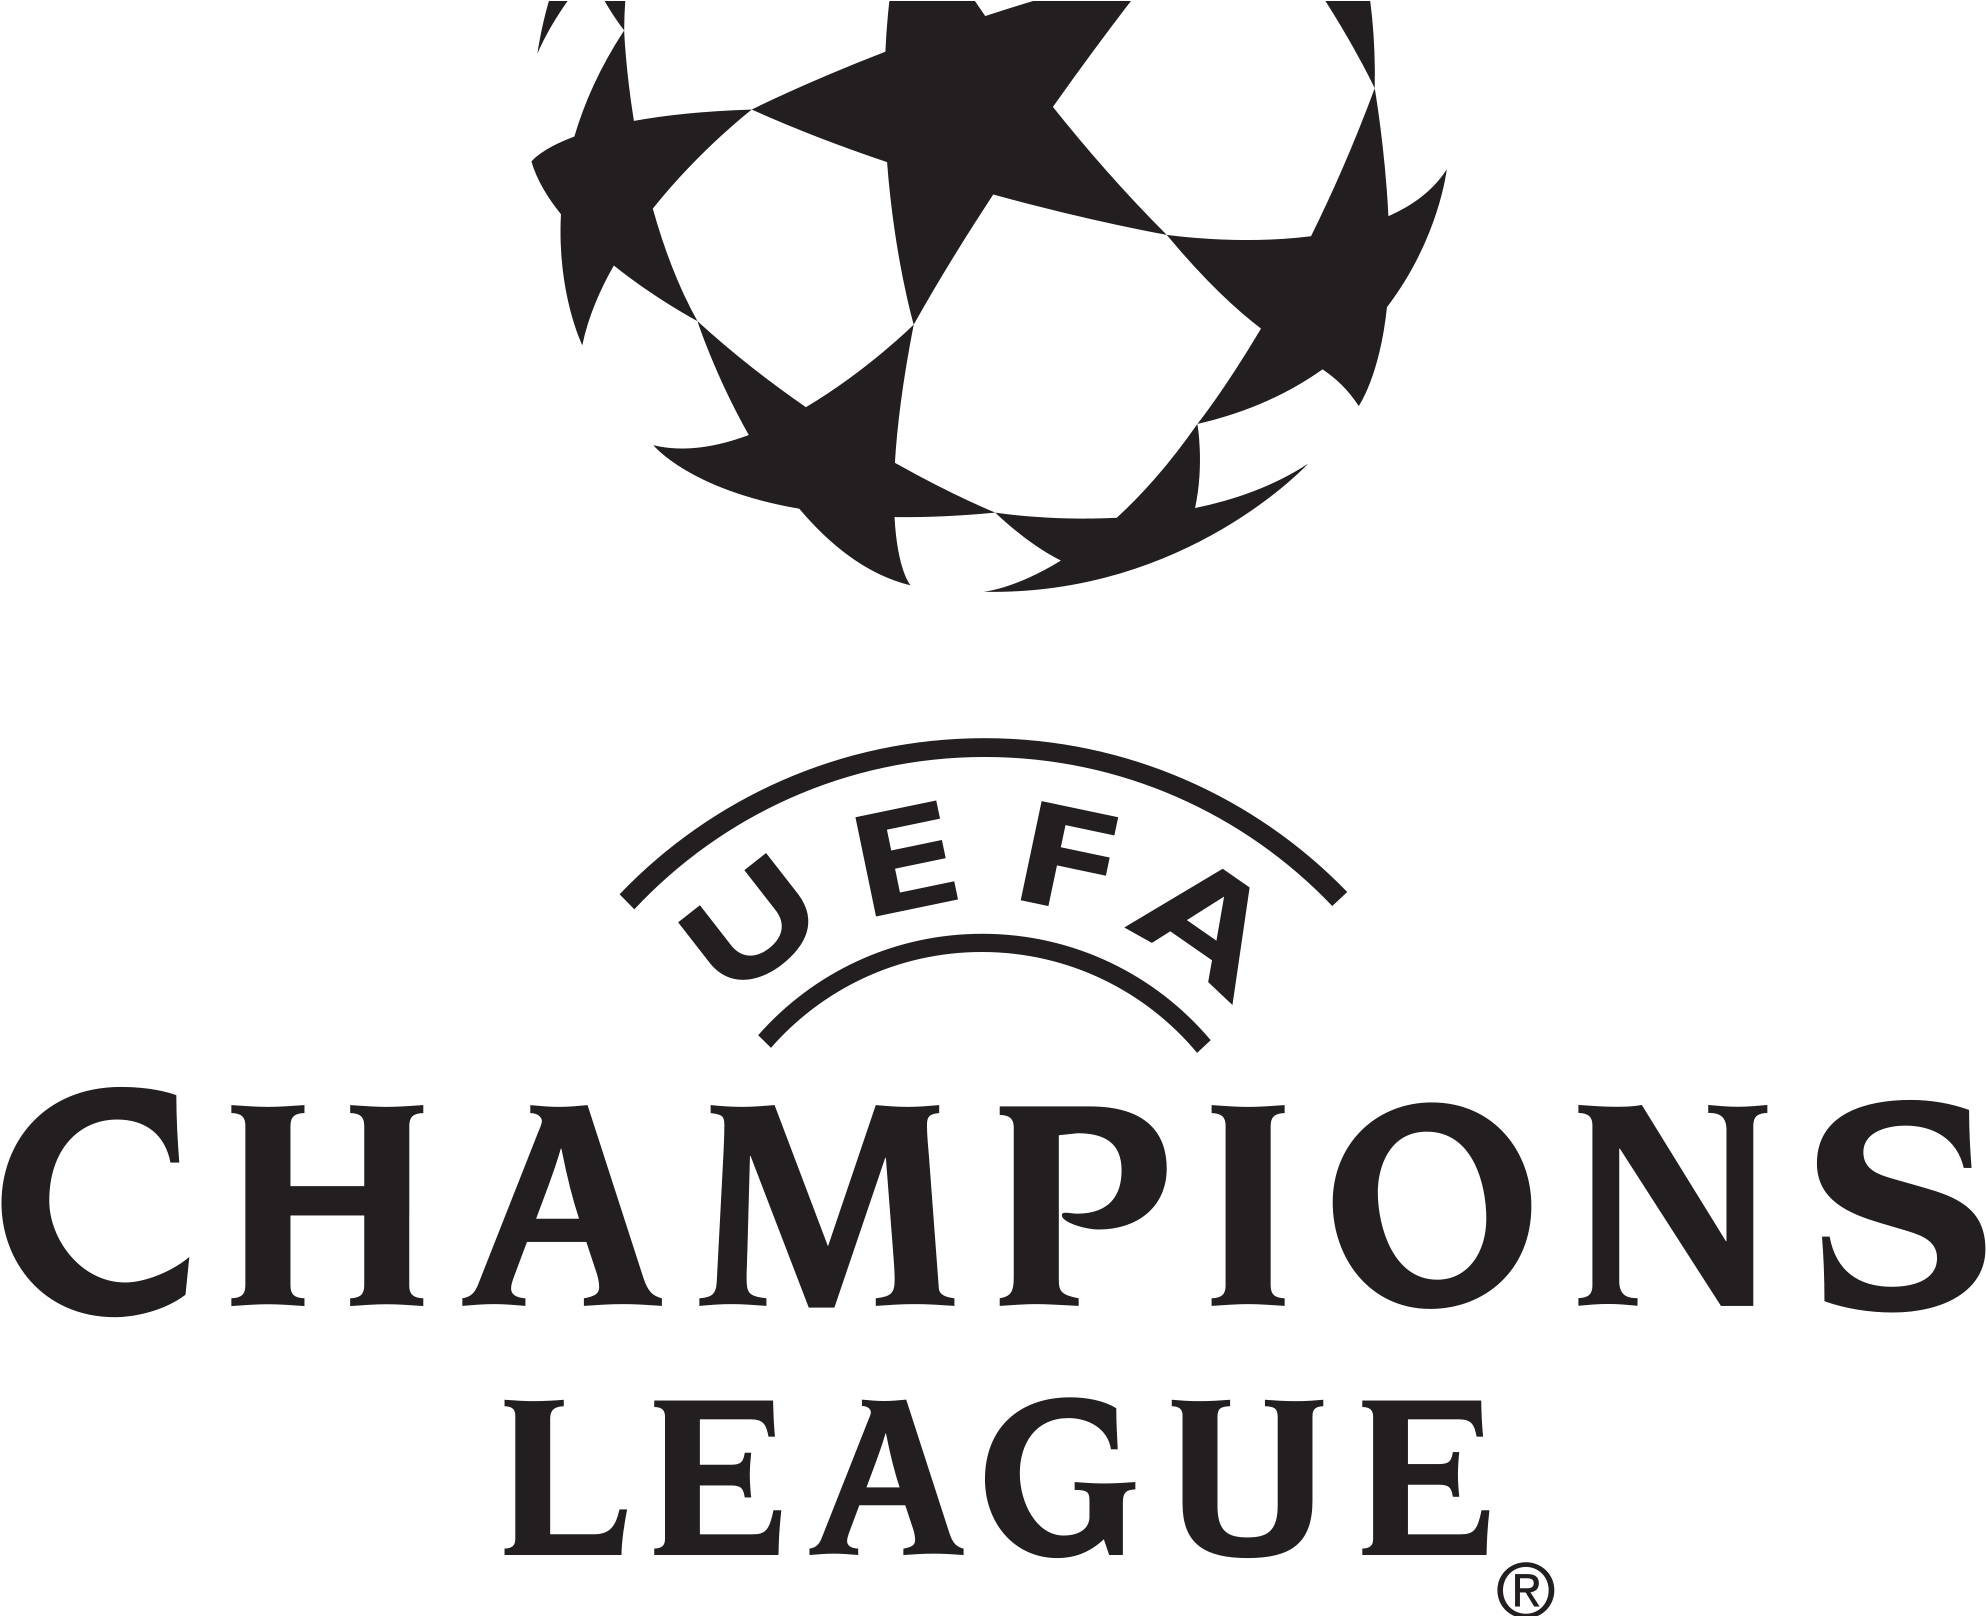 uefa champions league png hd free uefa champions league hd png transparent images 58080 pngio uefa champions league png hd free